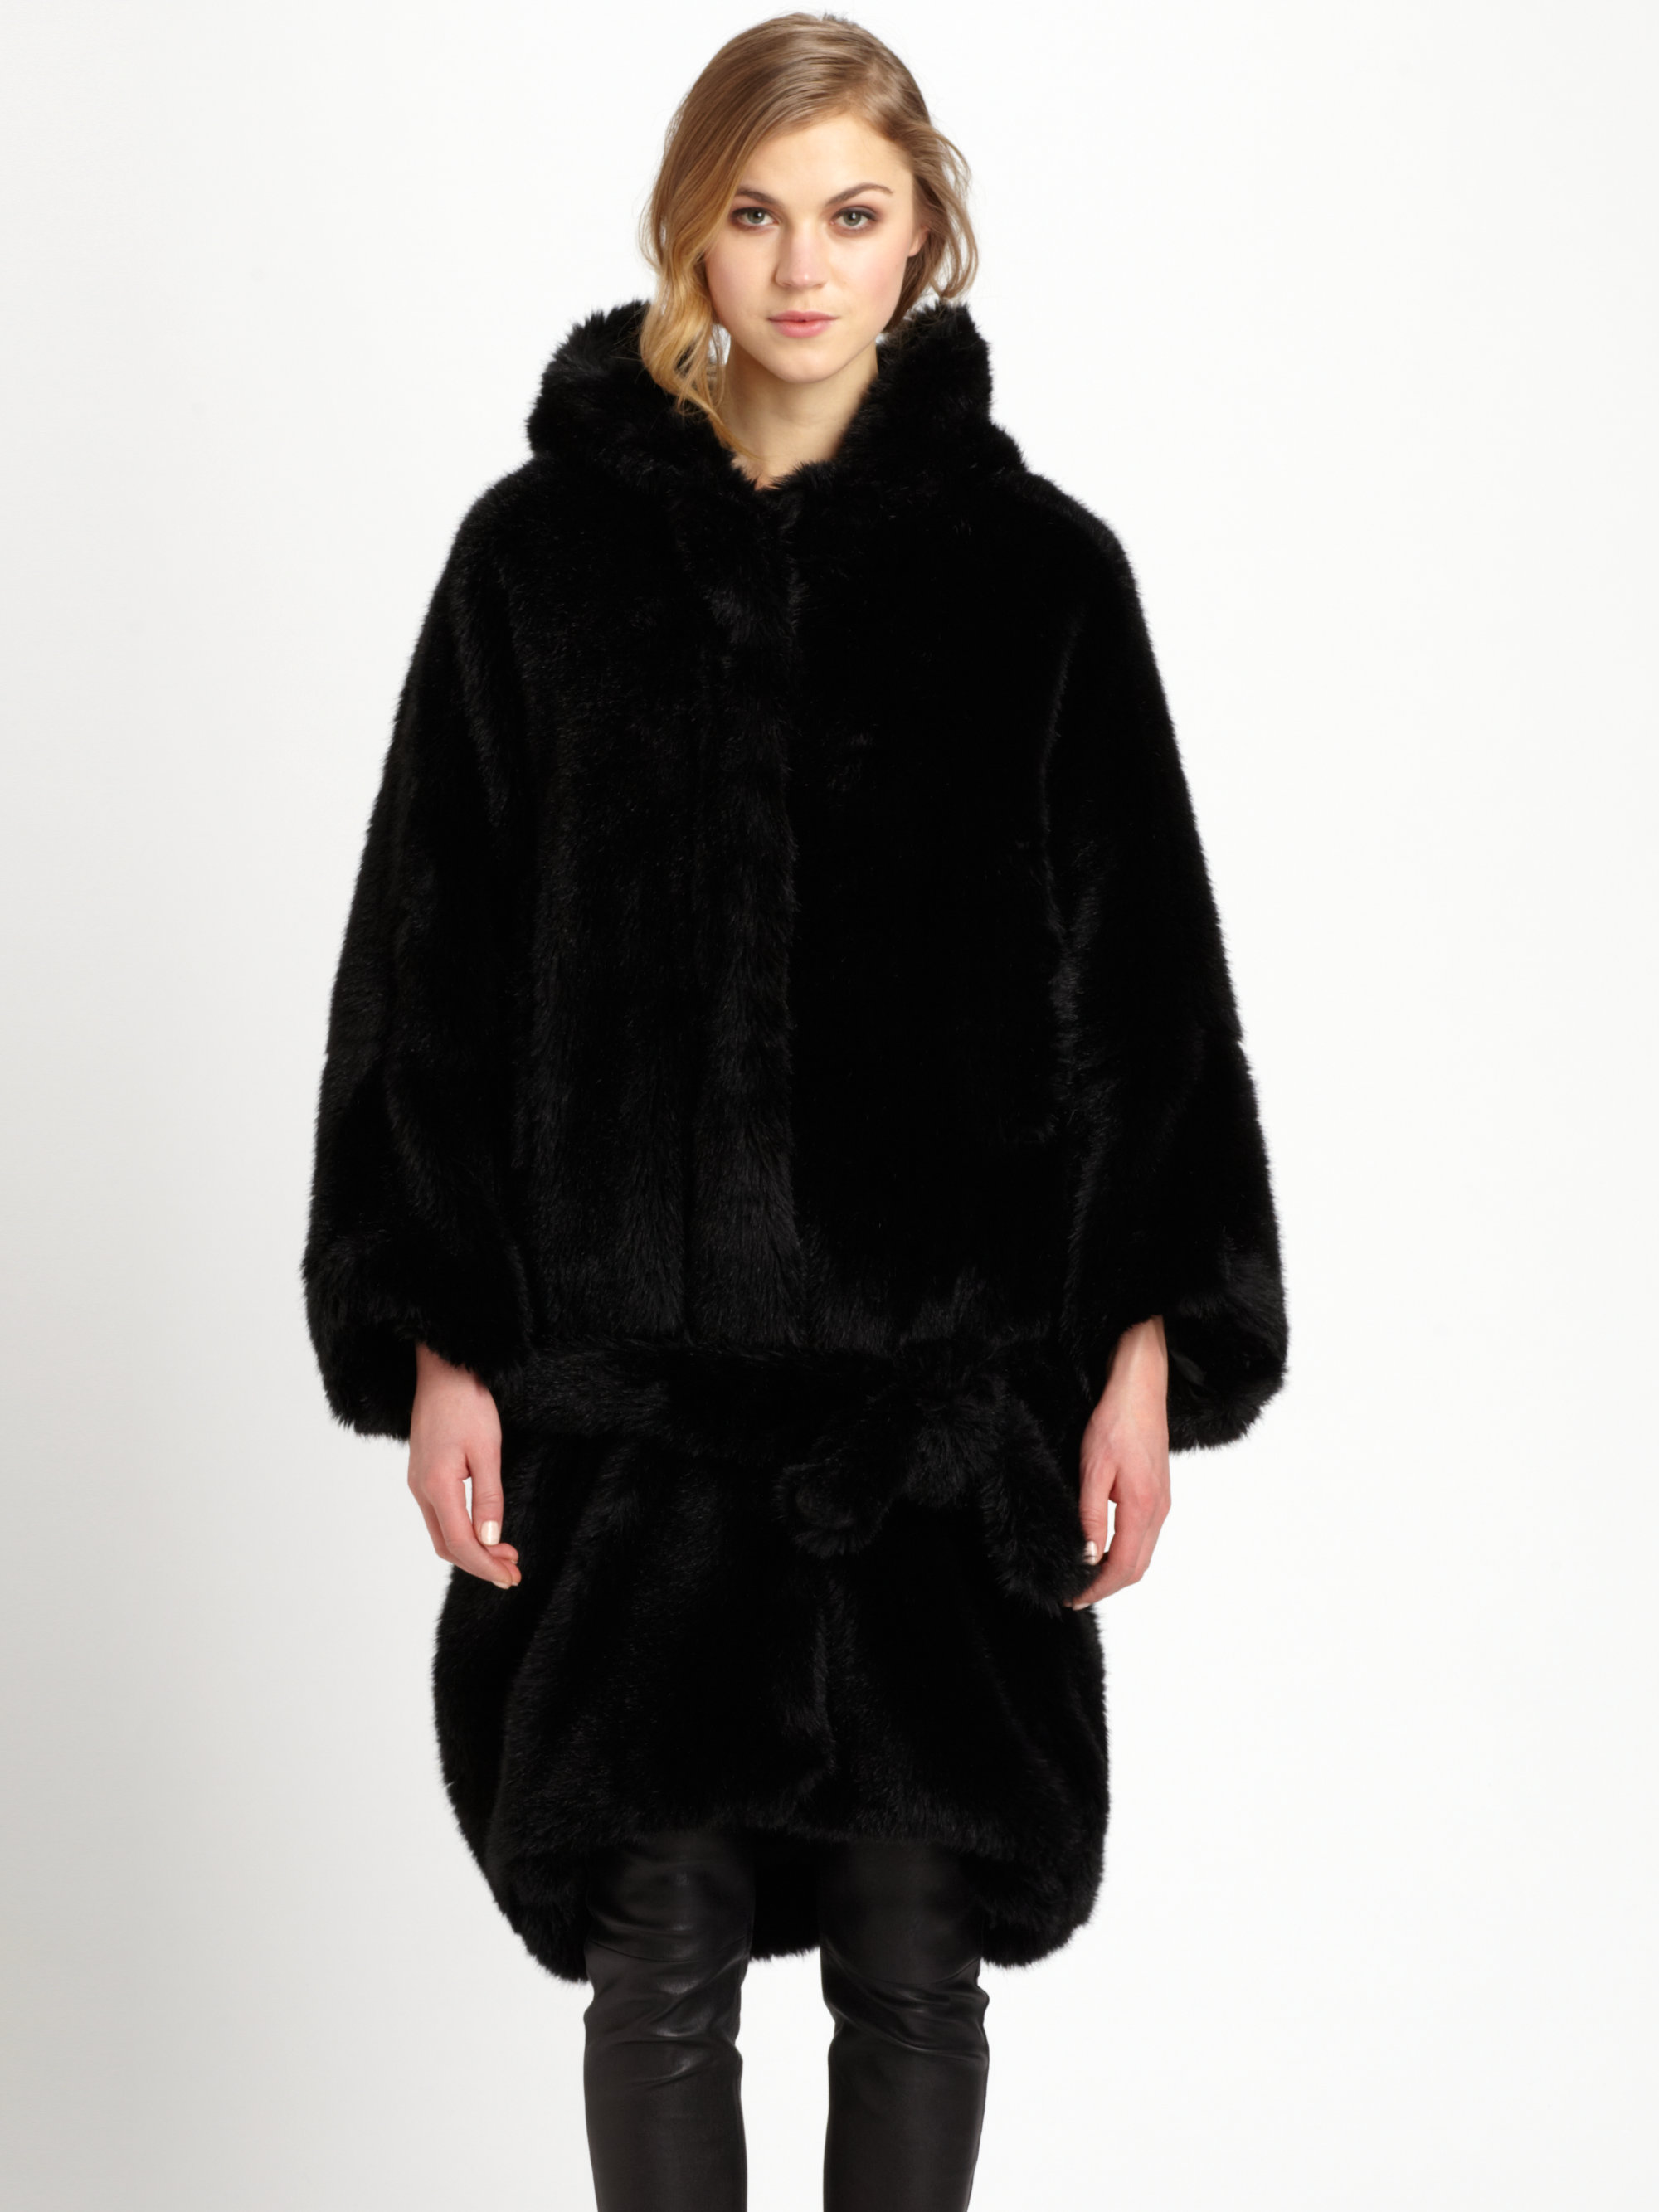 Free shipping BOTH ways on coat with fur hood black, from our vast selection of styles. Fast delivery, and 24/7/ real-person service with a smile. Click or call